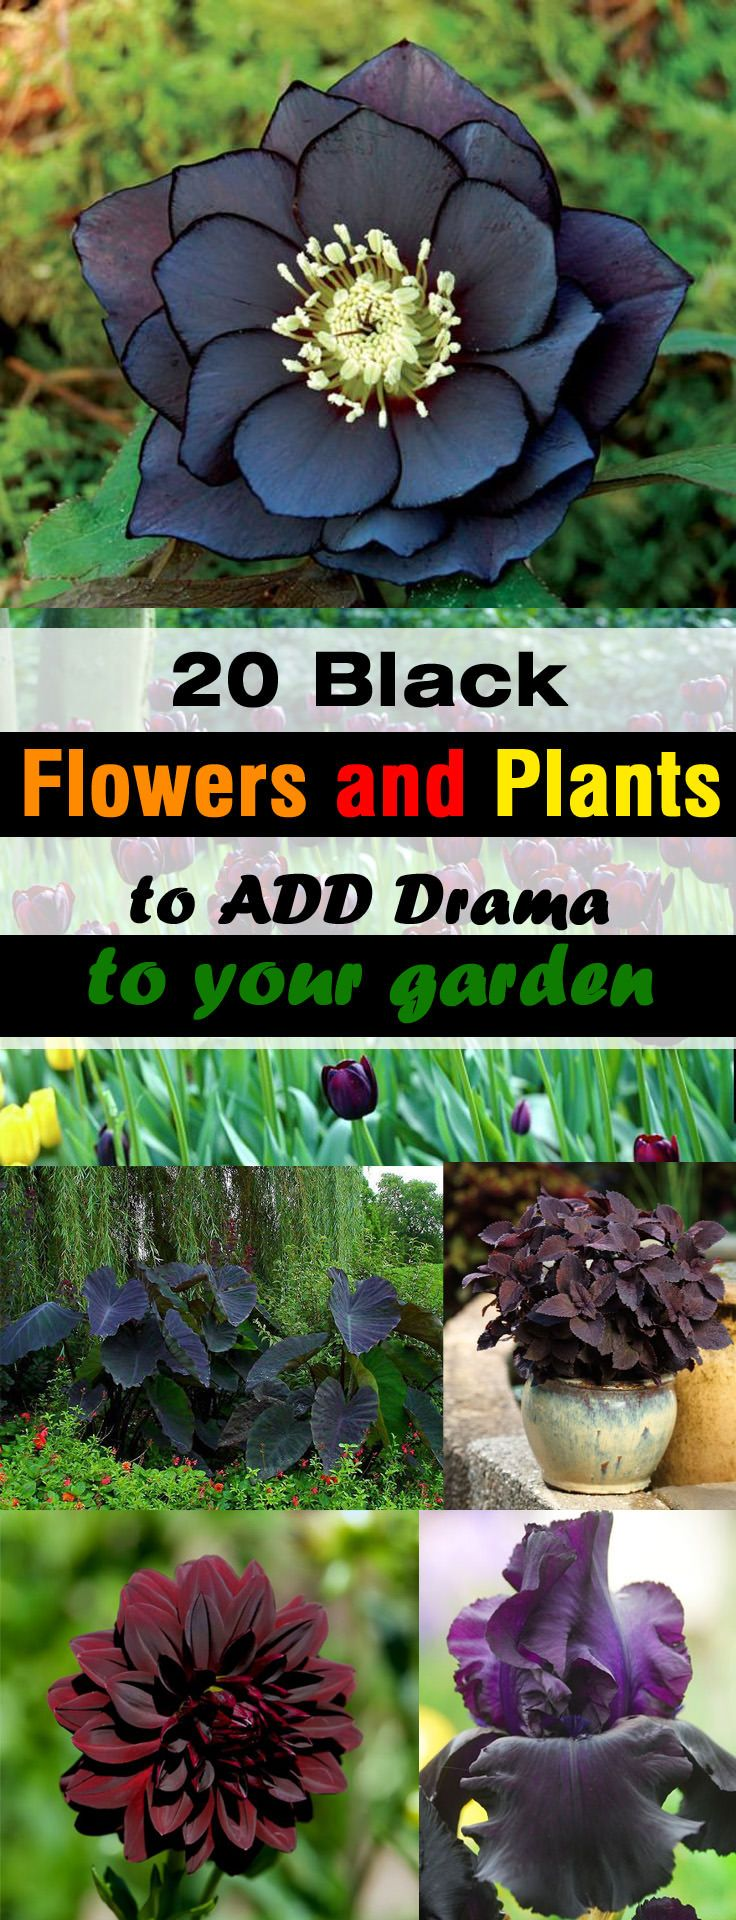 Add a unique touch of color and drama to your garden by adding black flowers and plants. These plants can also be grown in containers.